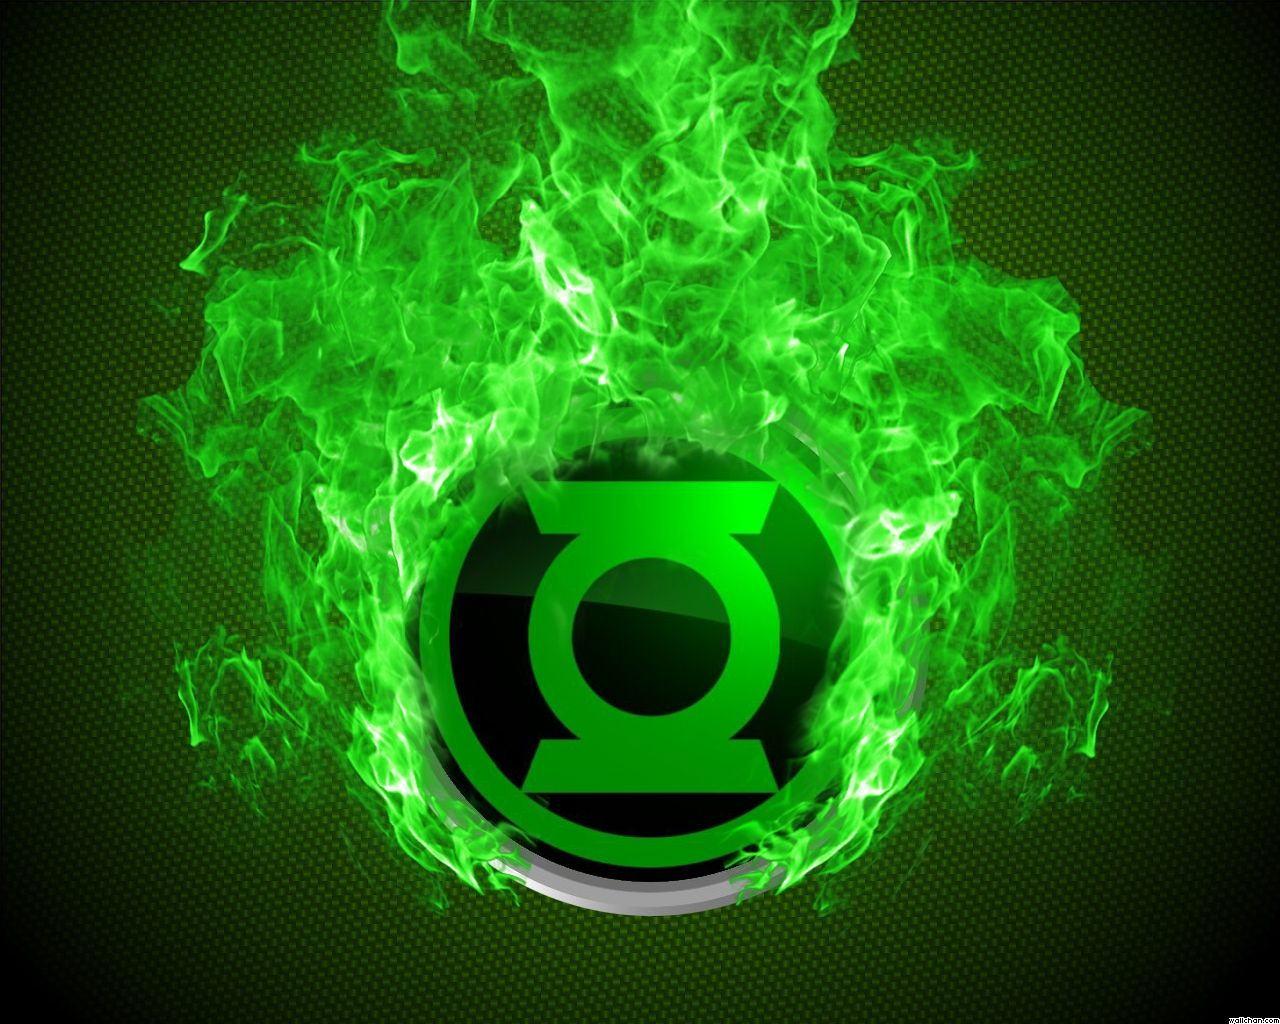 wallpaper green lantern corps logokalangozilla on deviantart